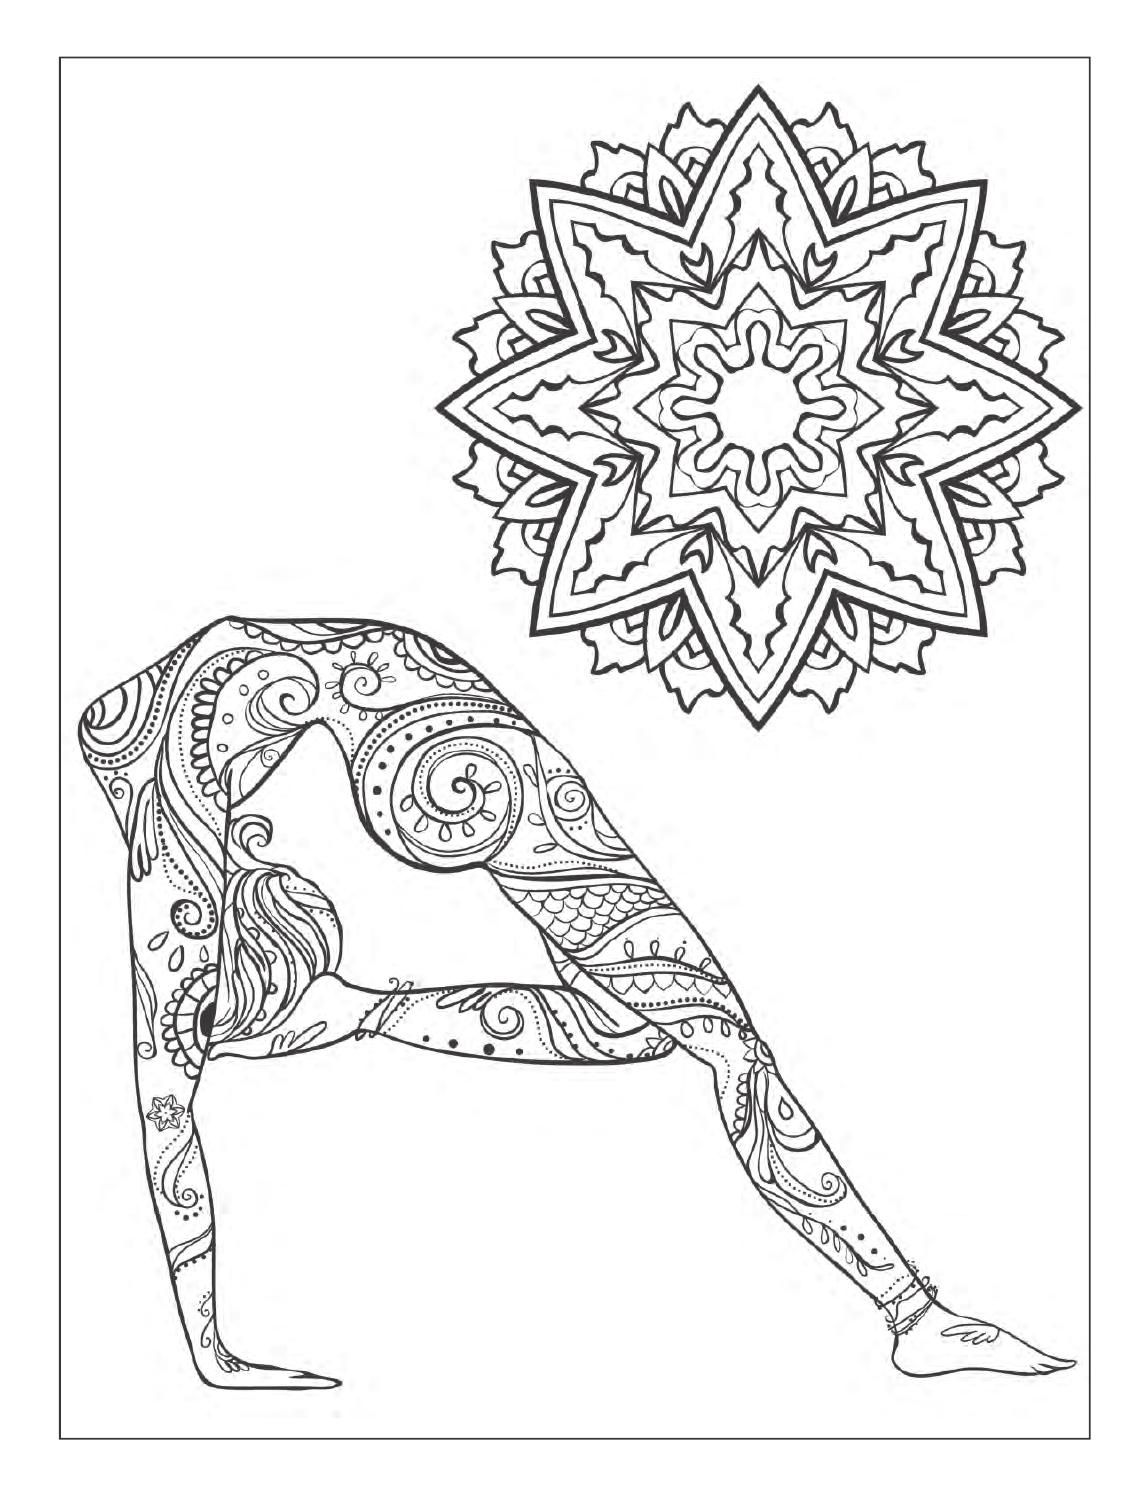 alexandru coloring pages - photo#4